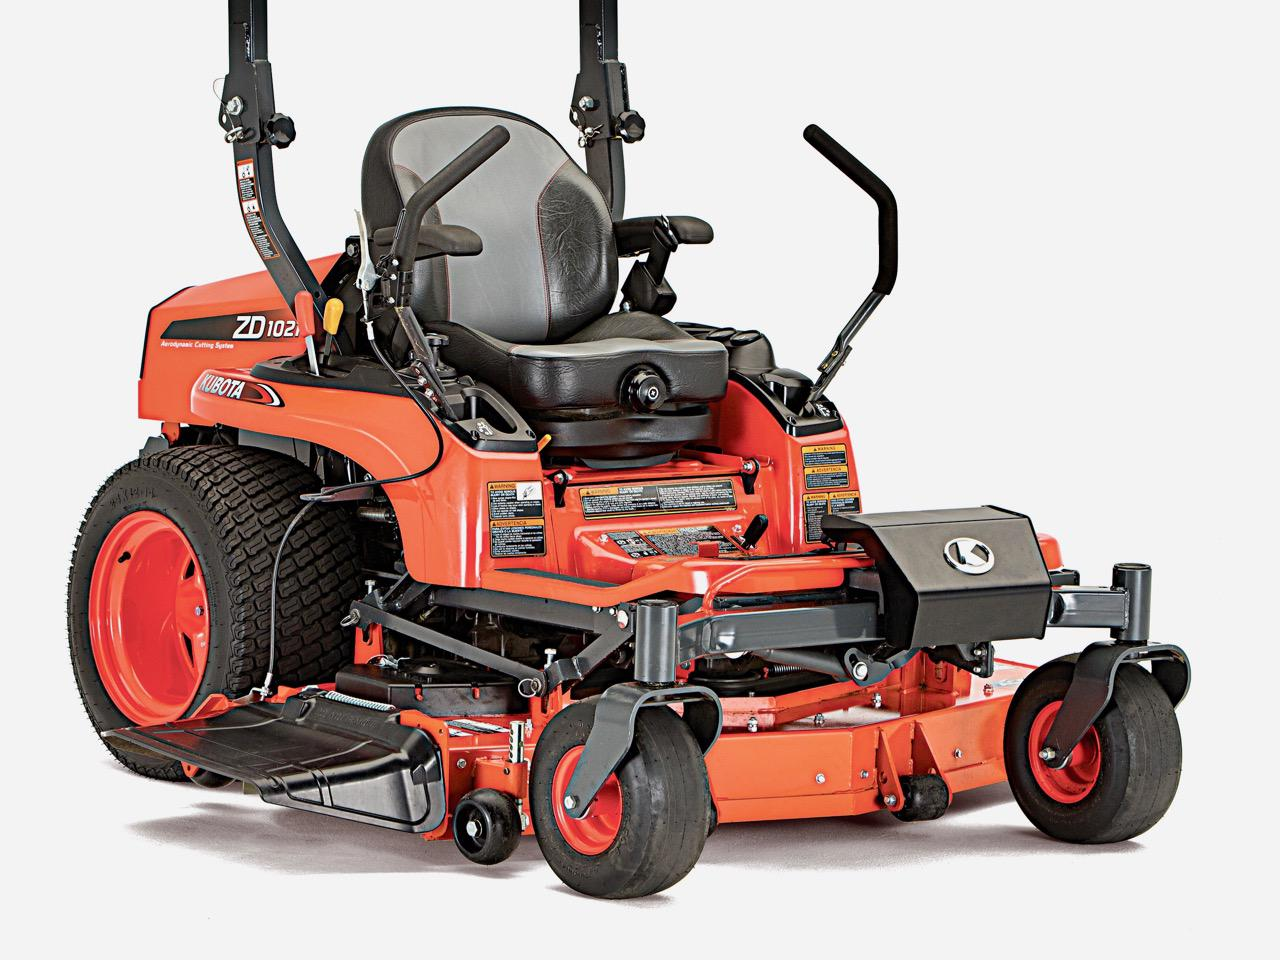 New Inventory from Kubota and Woods Alderman's Incorporated Lennon